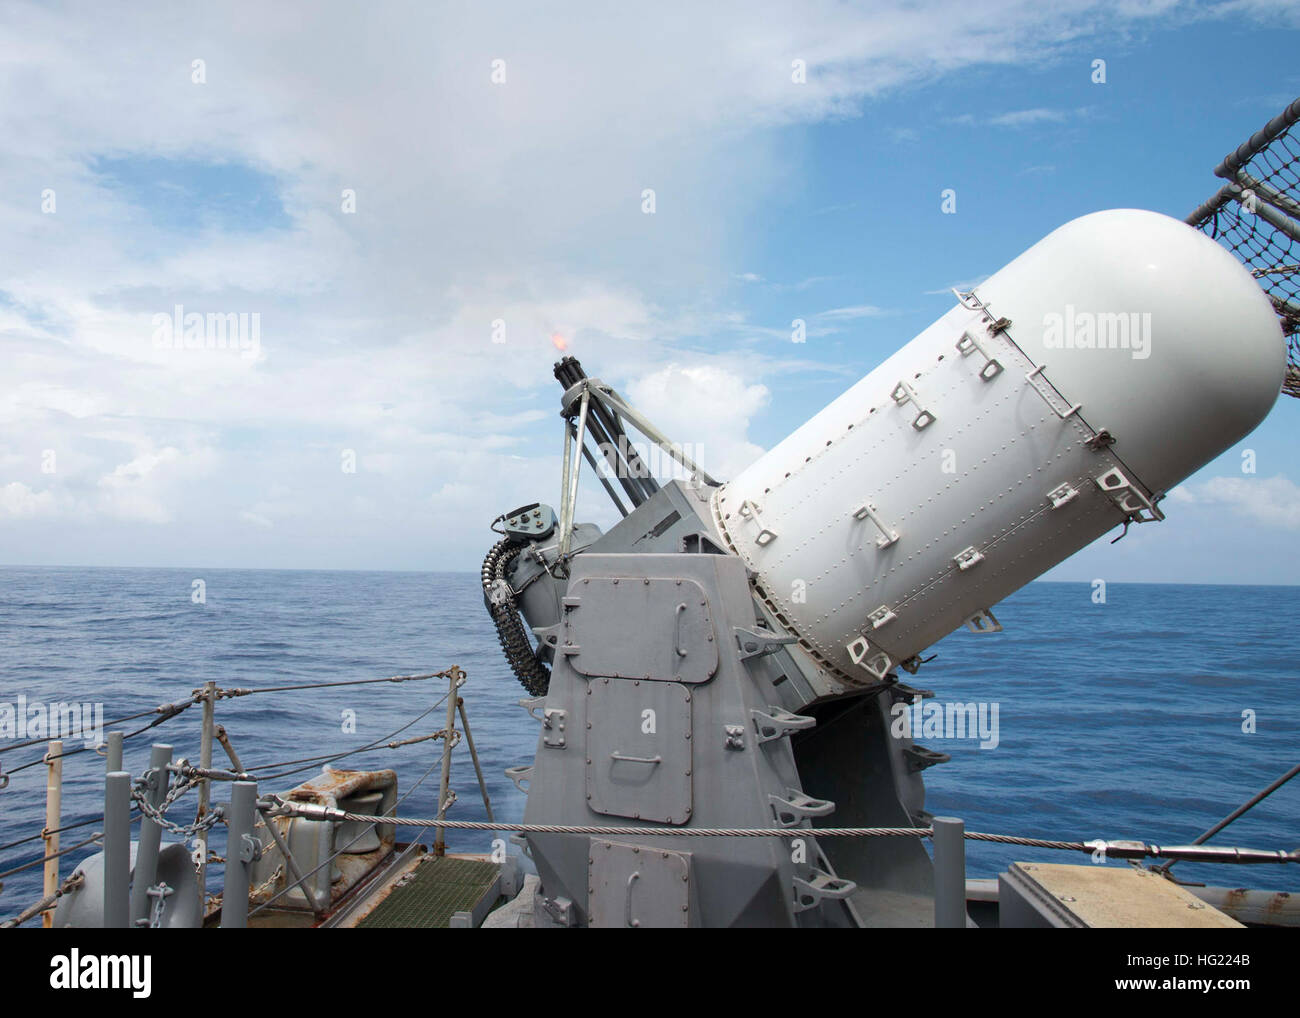 The close-in weapons system (CIWS) aboard the amphibious assault ship USS Peleliu (LHA 5) successfully fires upon - Stock Image